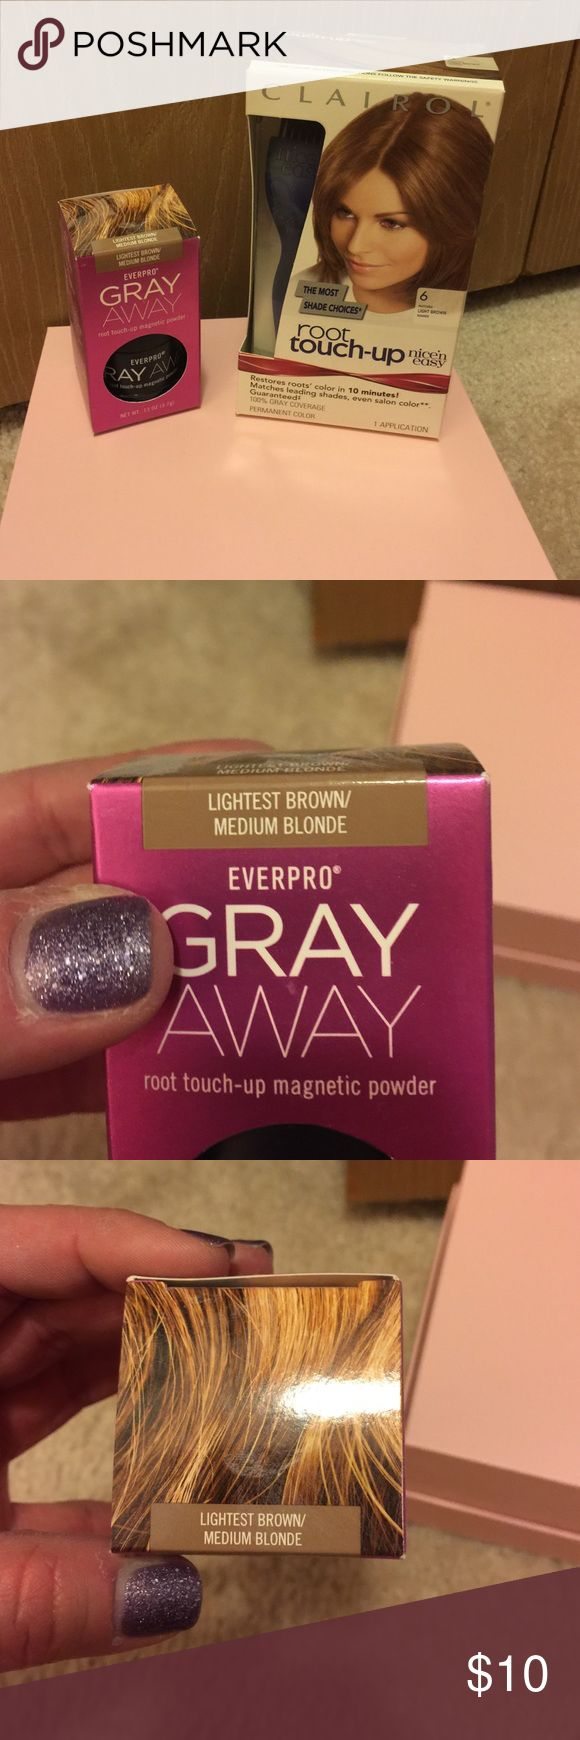 Clairol Root Touch-up and Gray Away Powder Brand New in Boxes. Clairol Root touch-up hair dye in number 6. Matches light brown shades. Everpro Gray Away magnetic touch-up powder in lightest brown/Medium blonde. Other